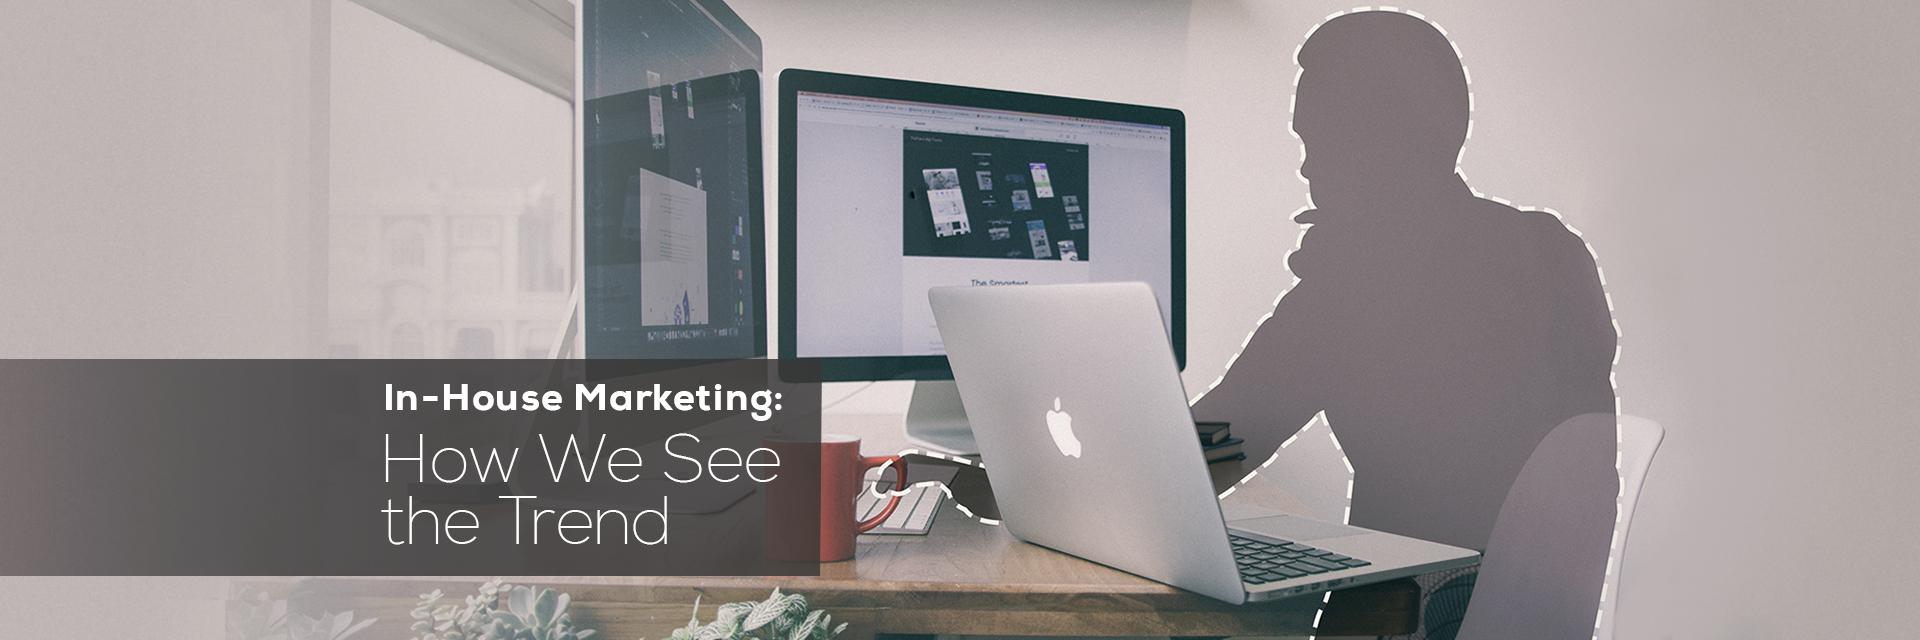 In-House Marketing: How We See the Trend